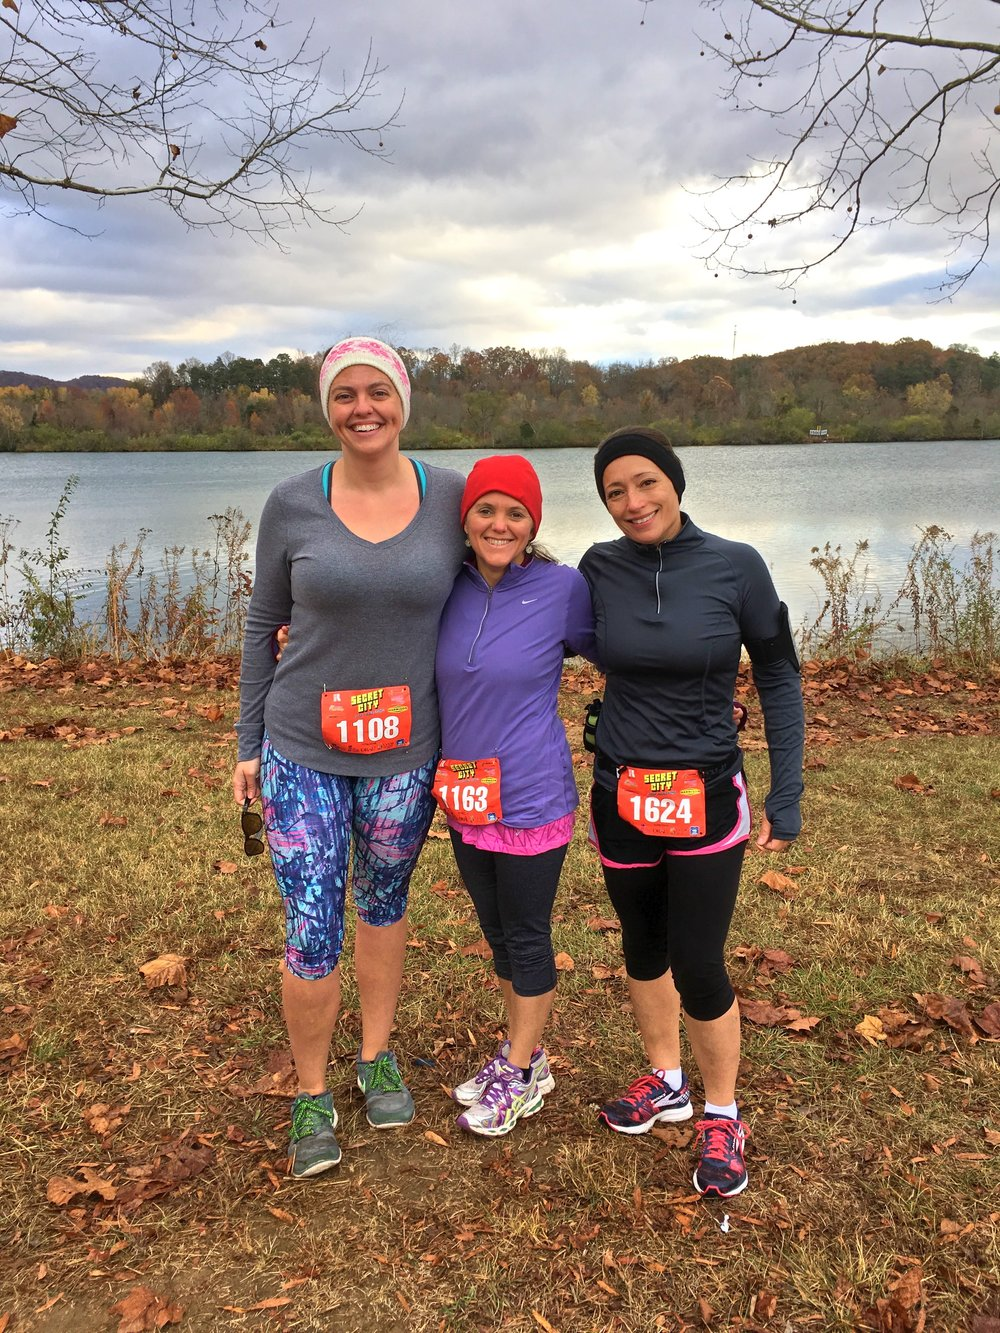 Kristie with friends and training partners, Brittany Corrigan and Linda Davis before running the Secret City Half Marathon.